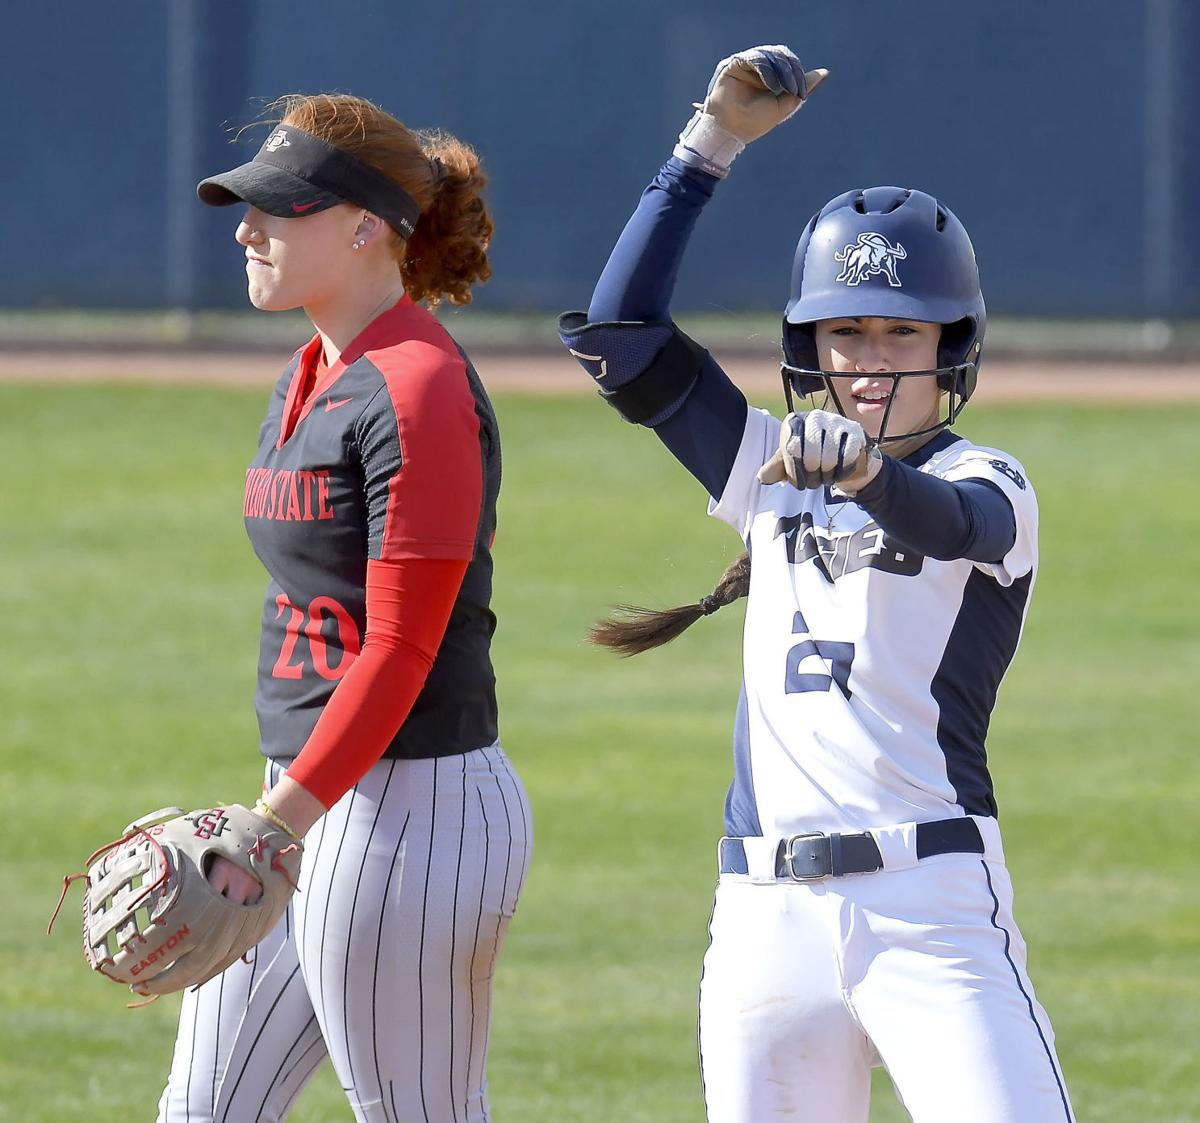 Plogger sparkled for USU's softball program